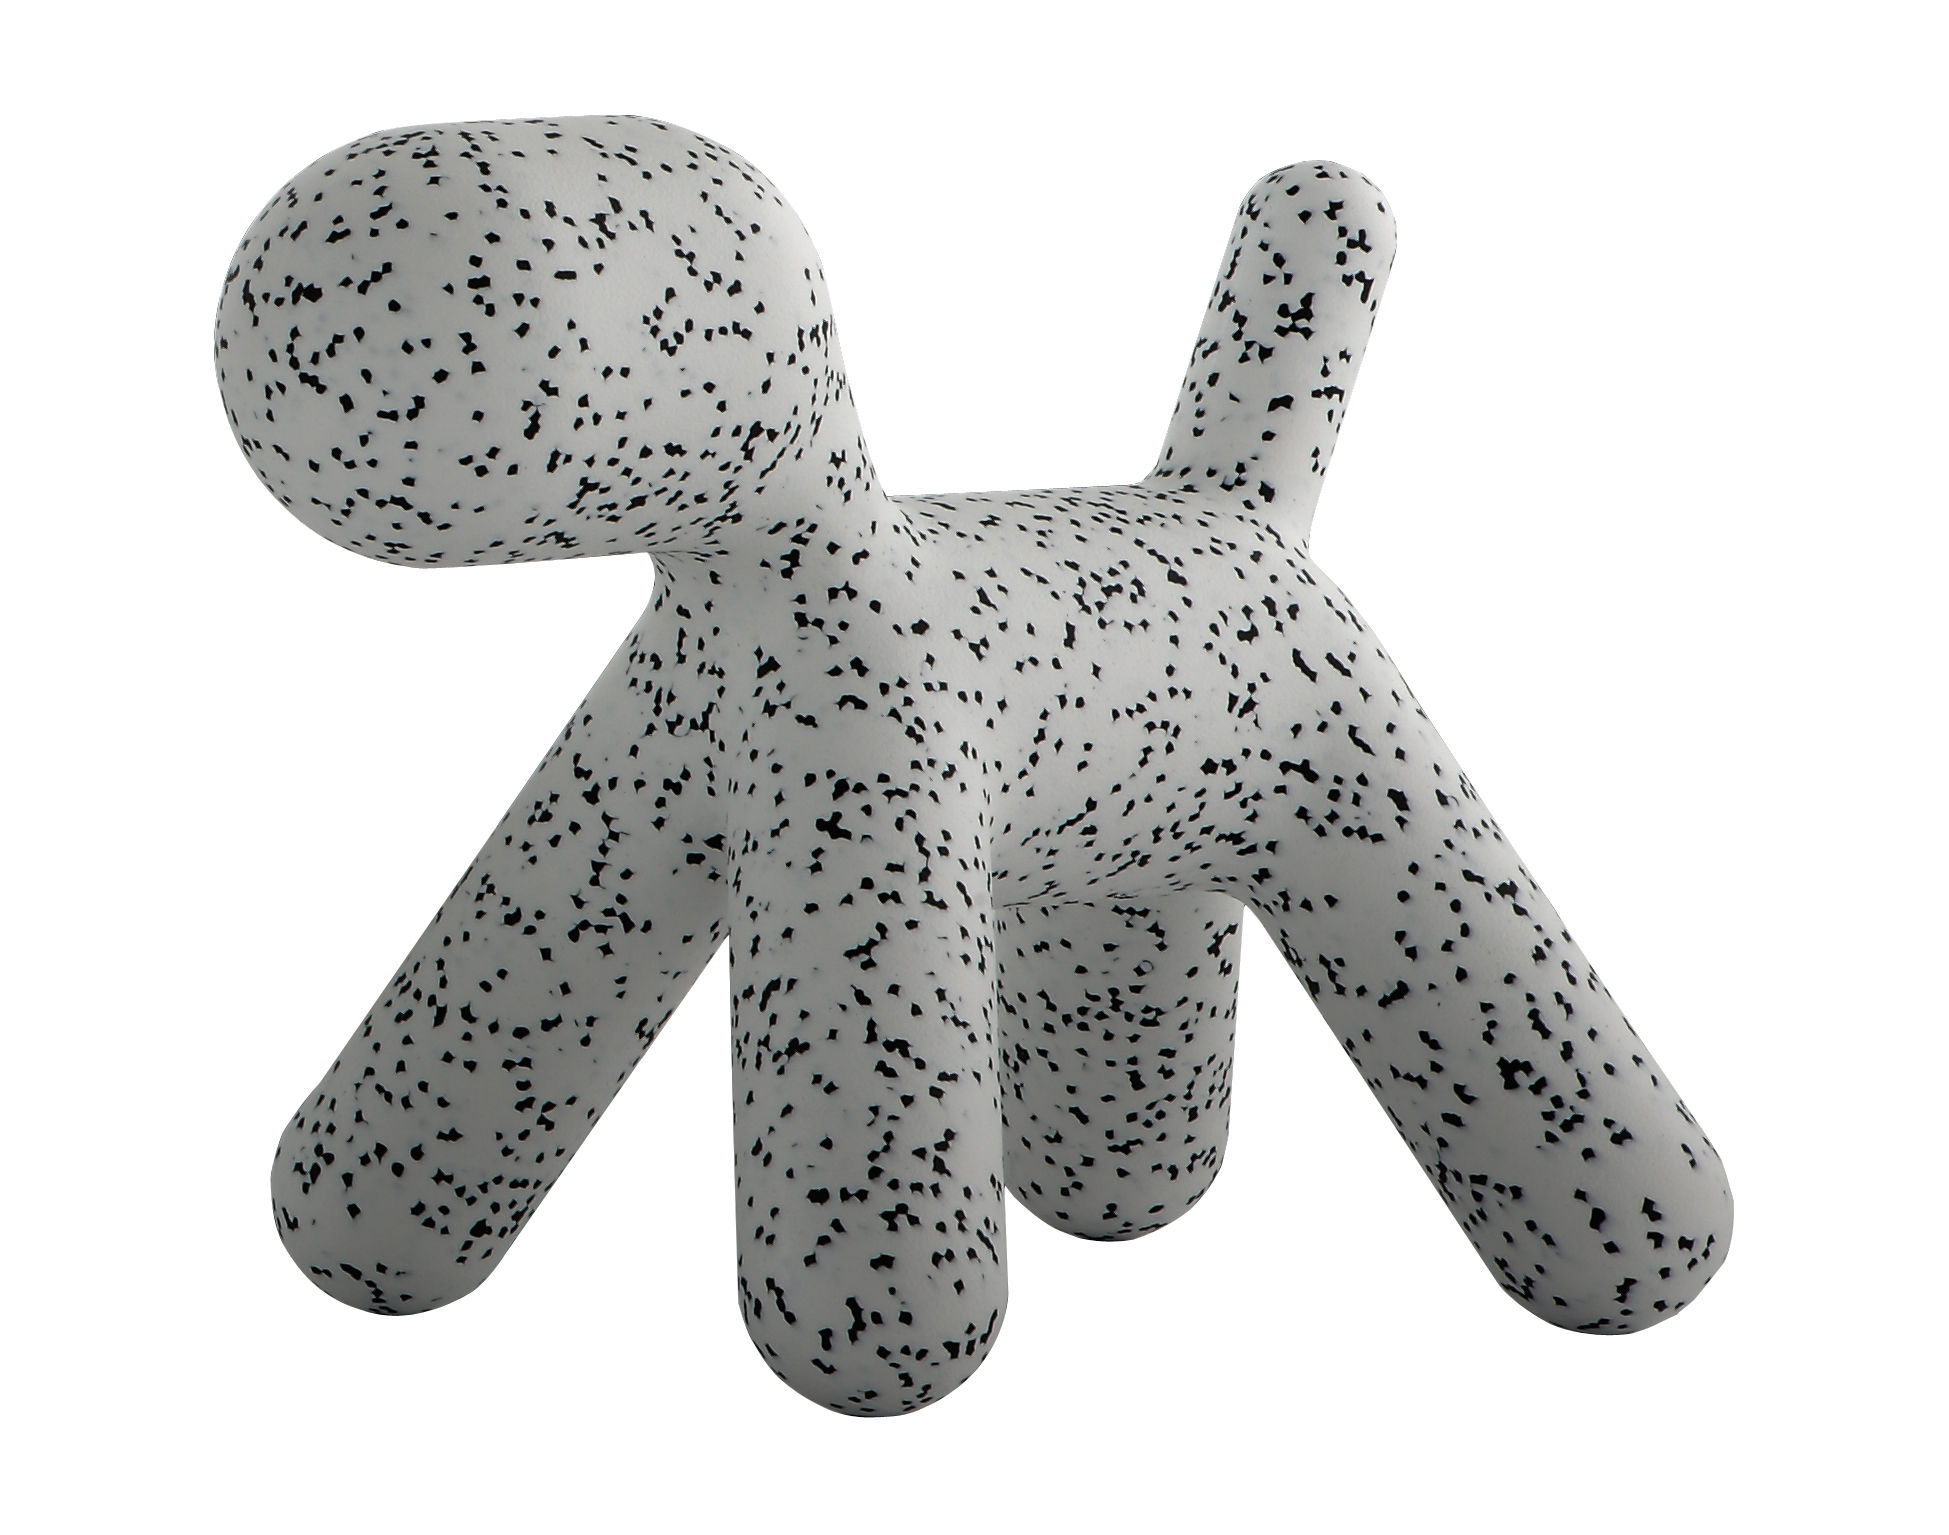 Furniture - Kids Furniture - Puppy Small Children's chair - / Small - L 42 cm by Magis Collection Me Too - White / Black mottled - roto-moulded polyhene